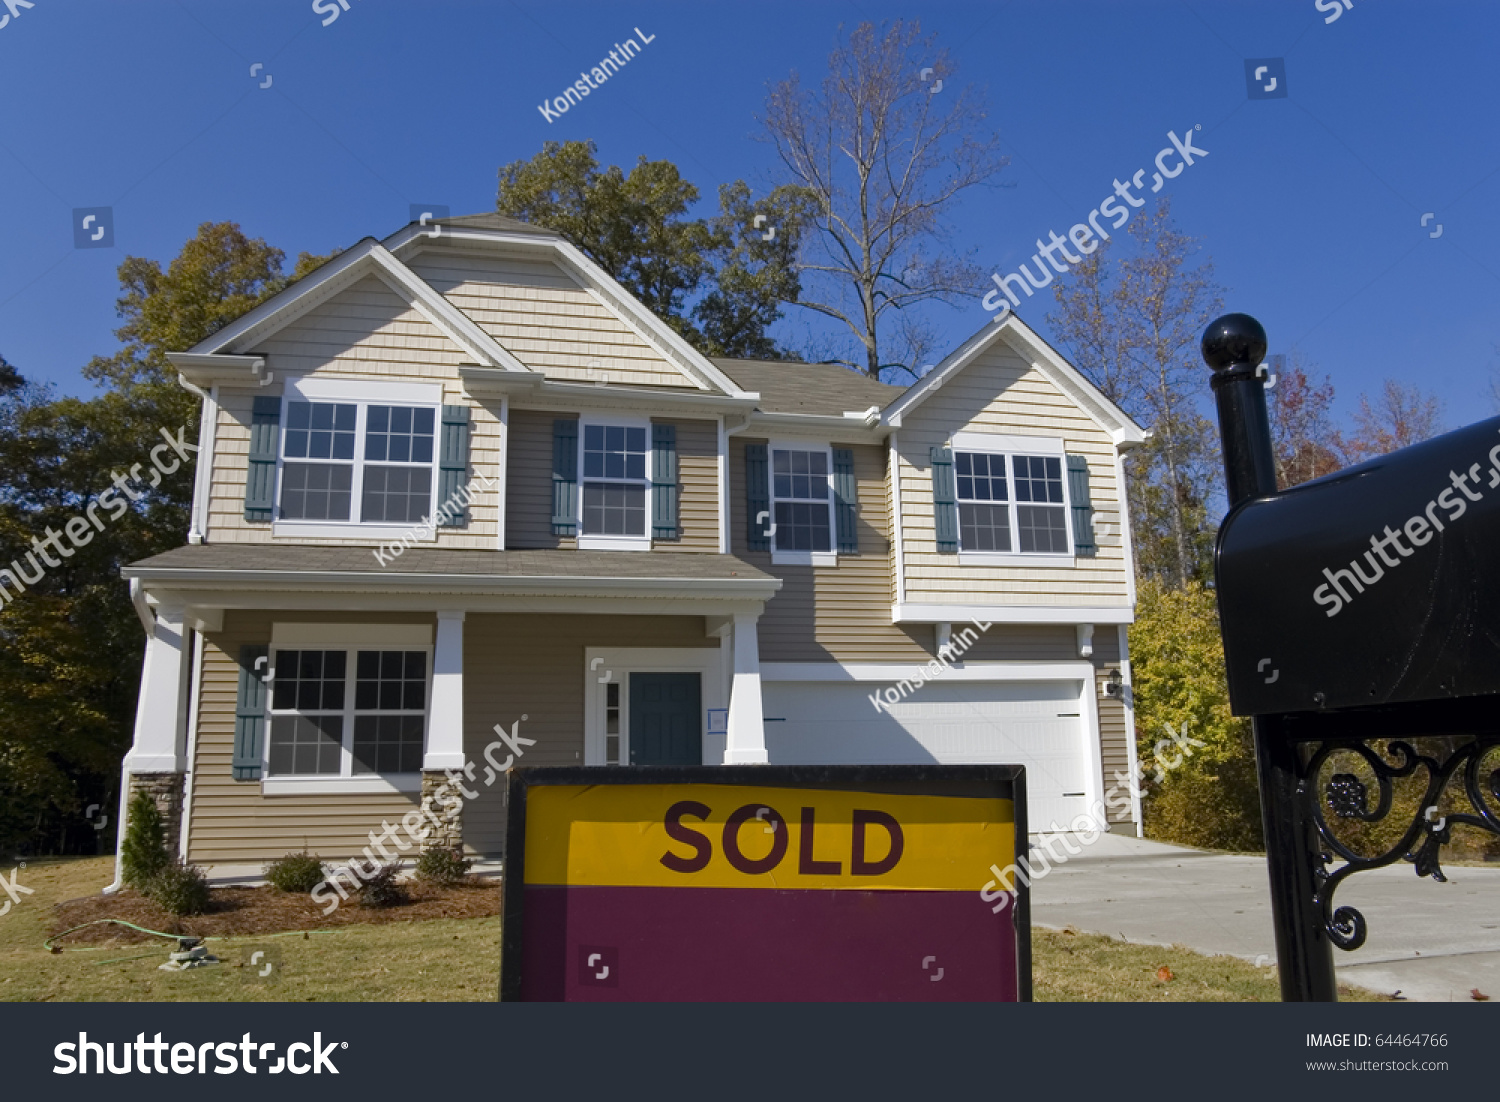 Sold new home for sale sign stock photo 64464766 for New home sign